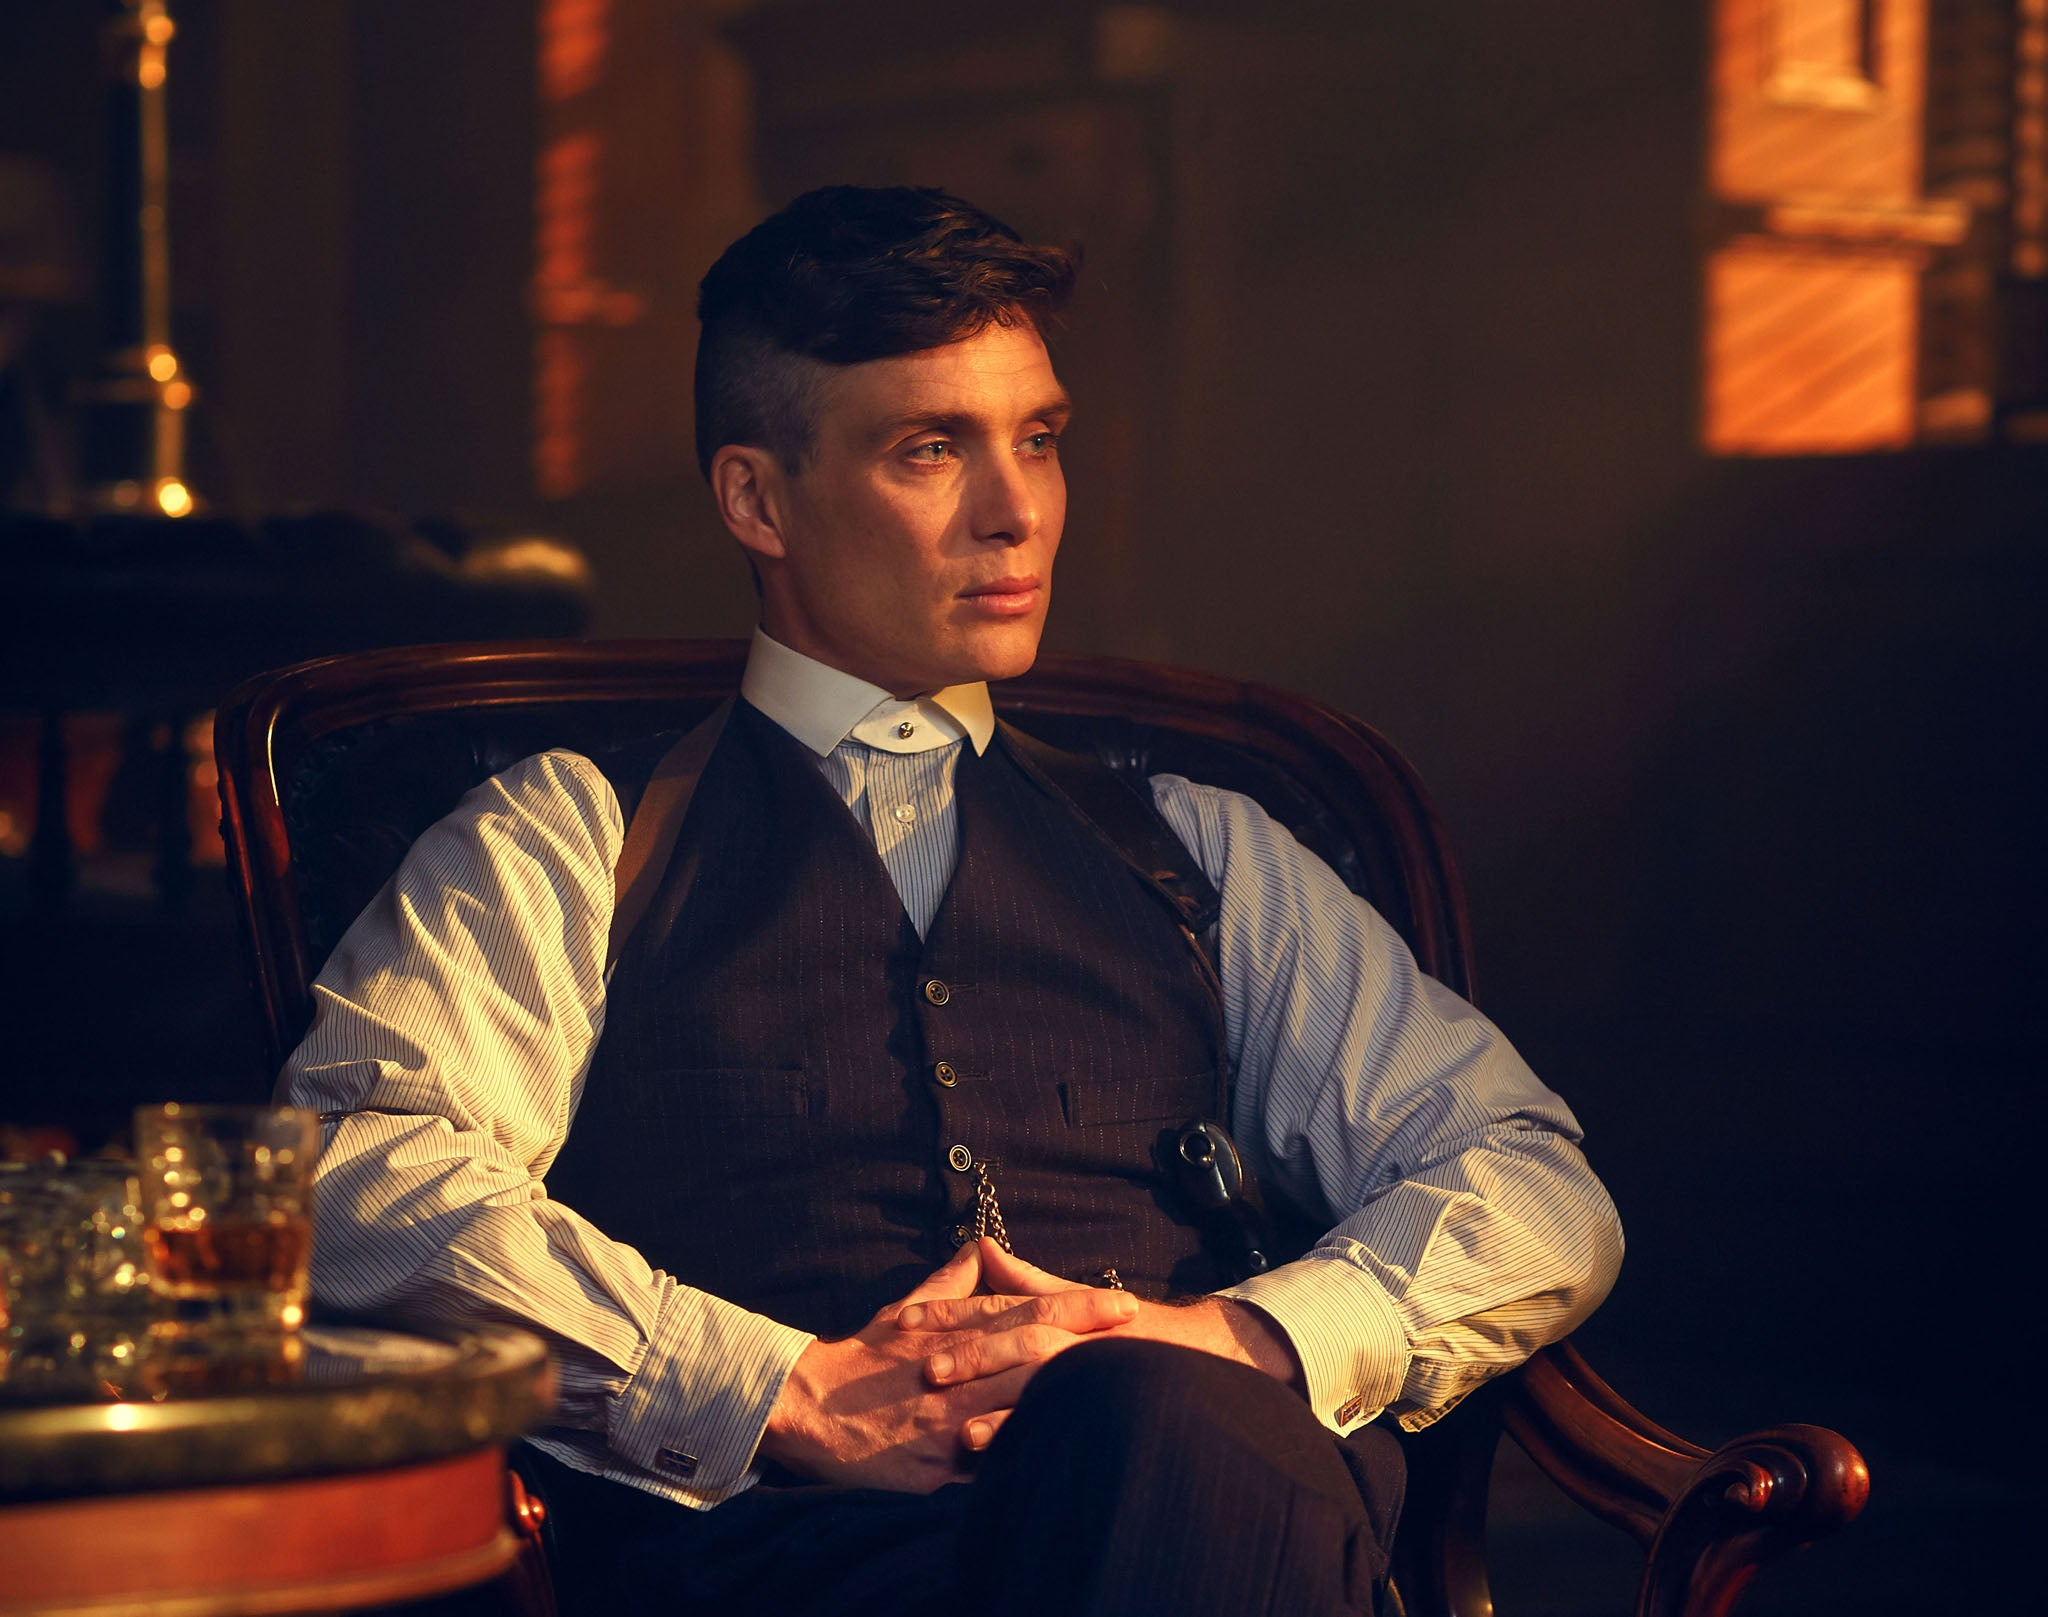 Peaky Blinders Season 3 Spoilers Cast And Predictions